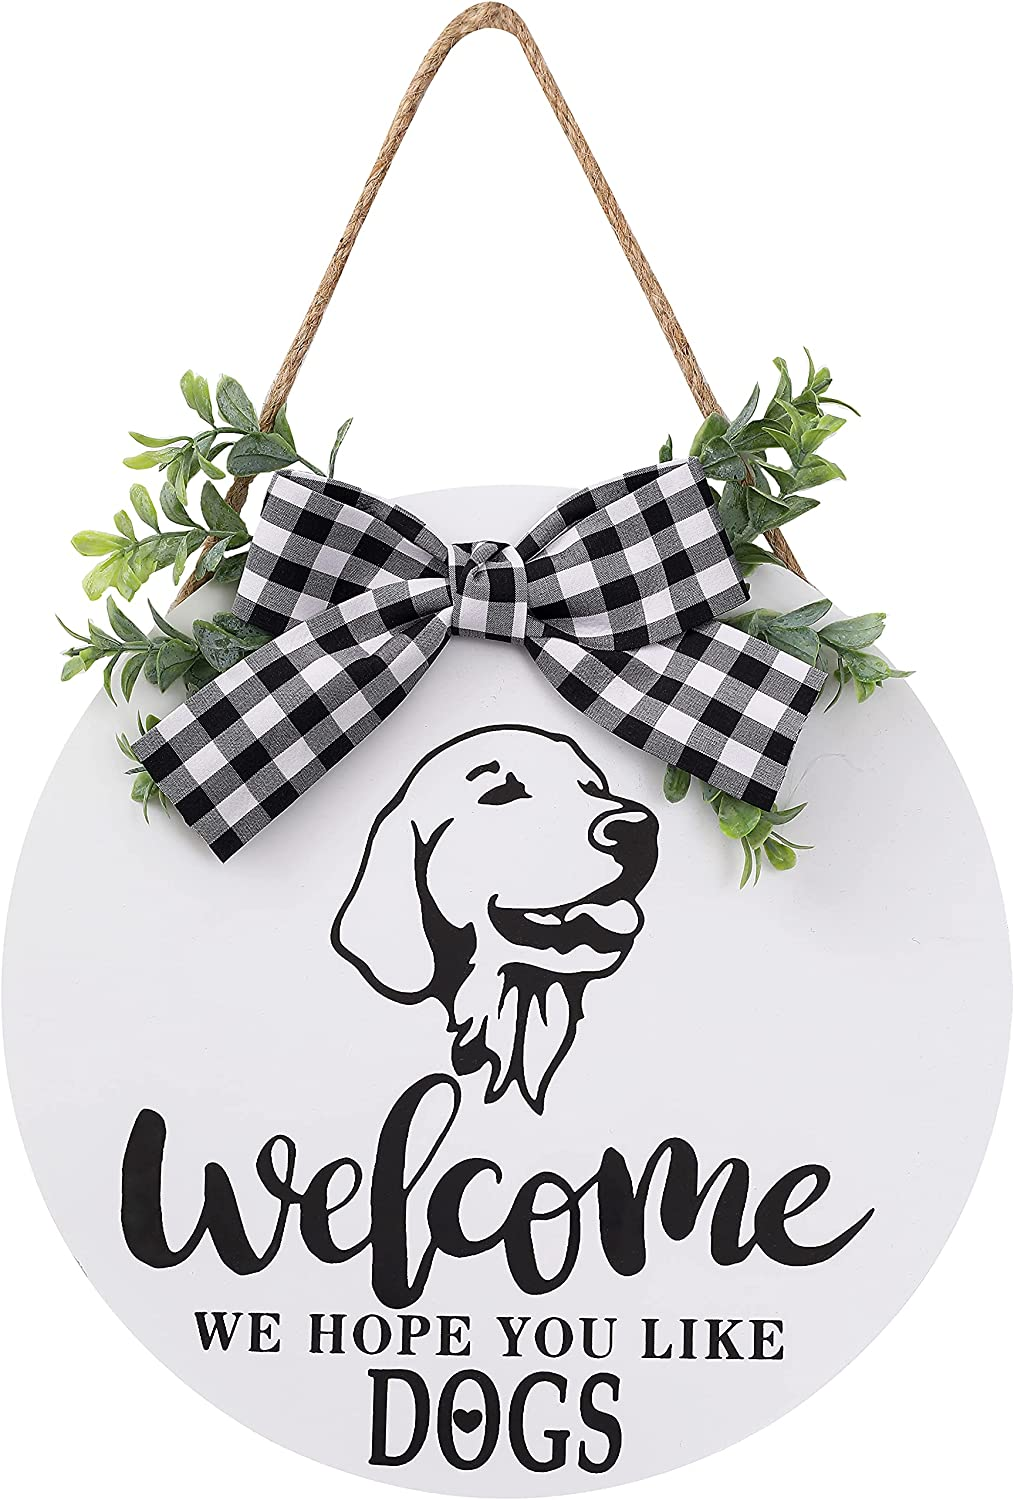 Welcome Sign Rustic Front Door Decor, We Hope You Like Dogs Round Wood Sign Hanging Welcome Farmhouse Porch Decoration Spring Summer Hello Door Sign Home Outdoor Wall Decor (White)